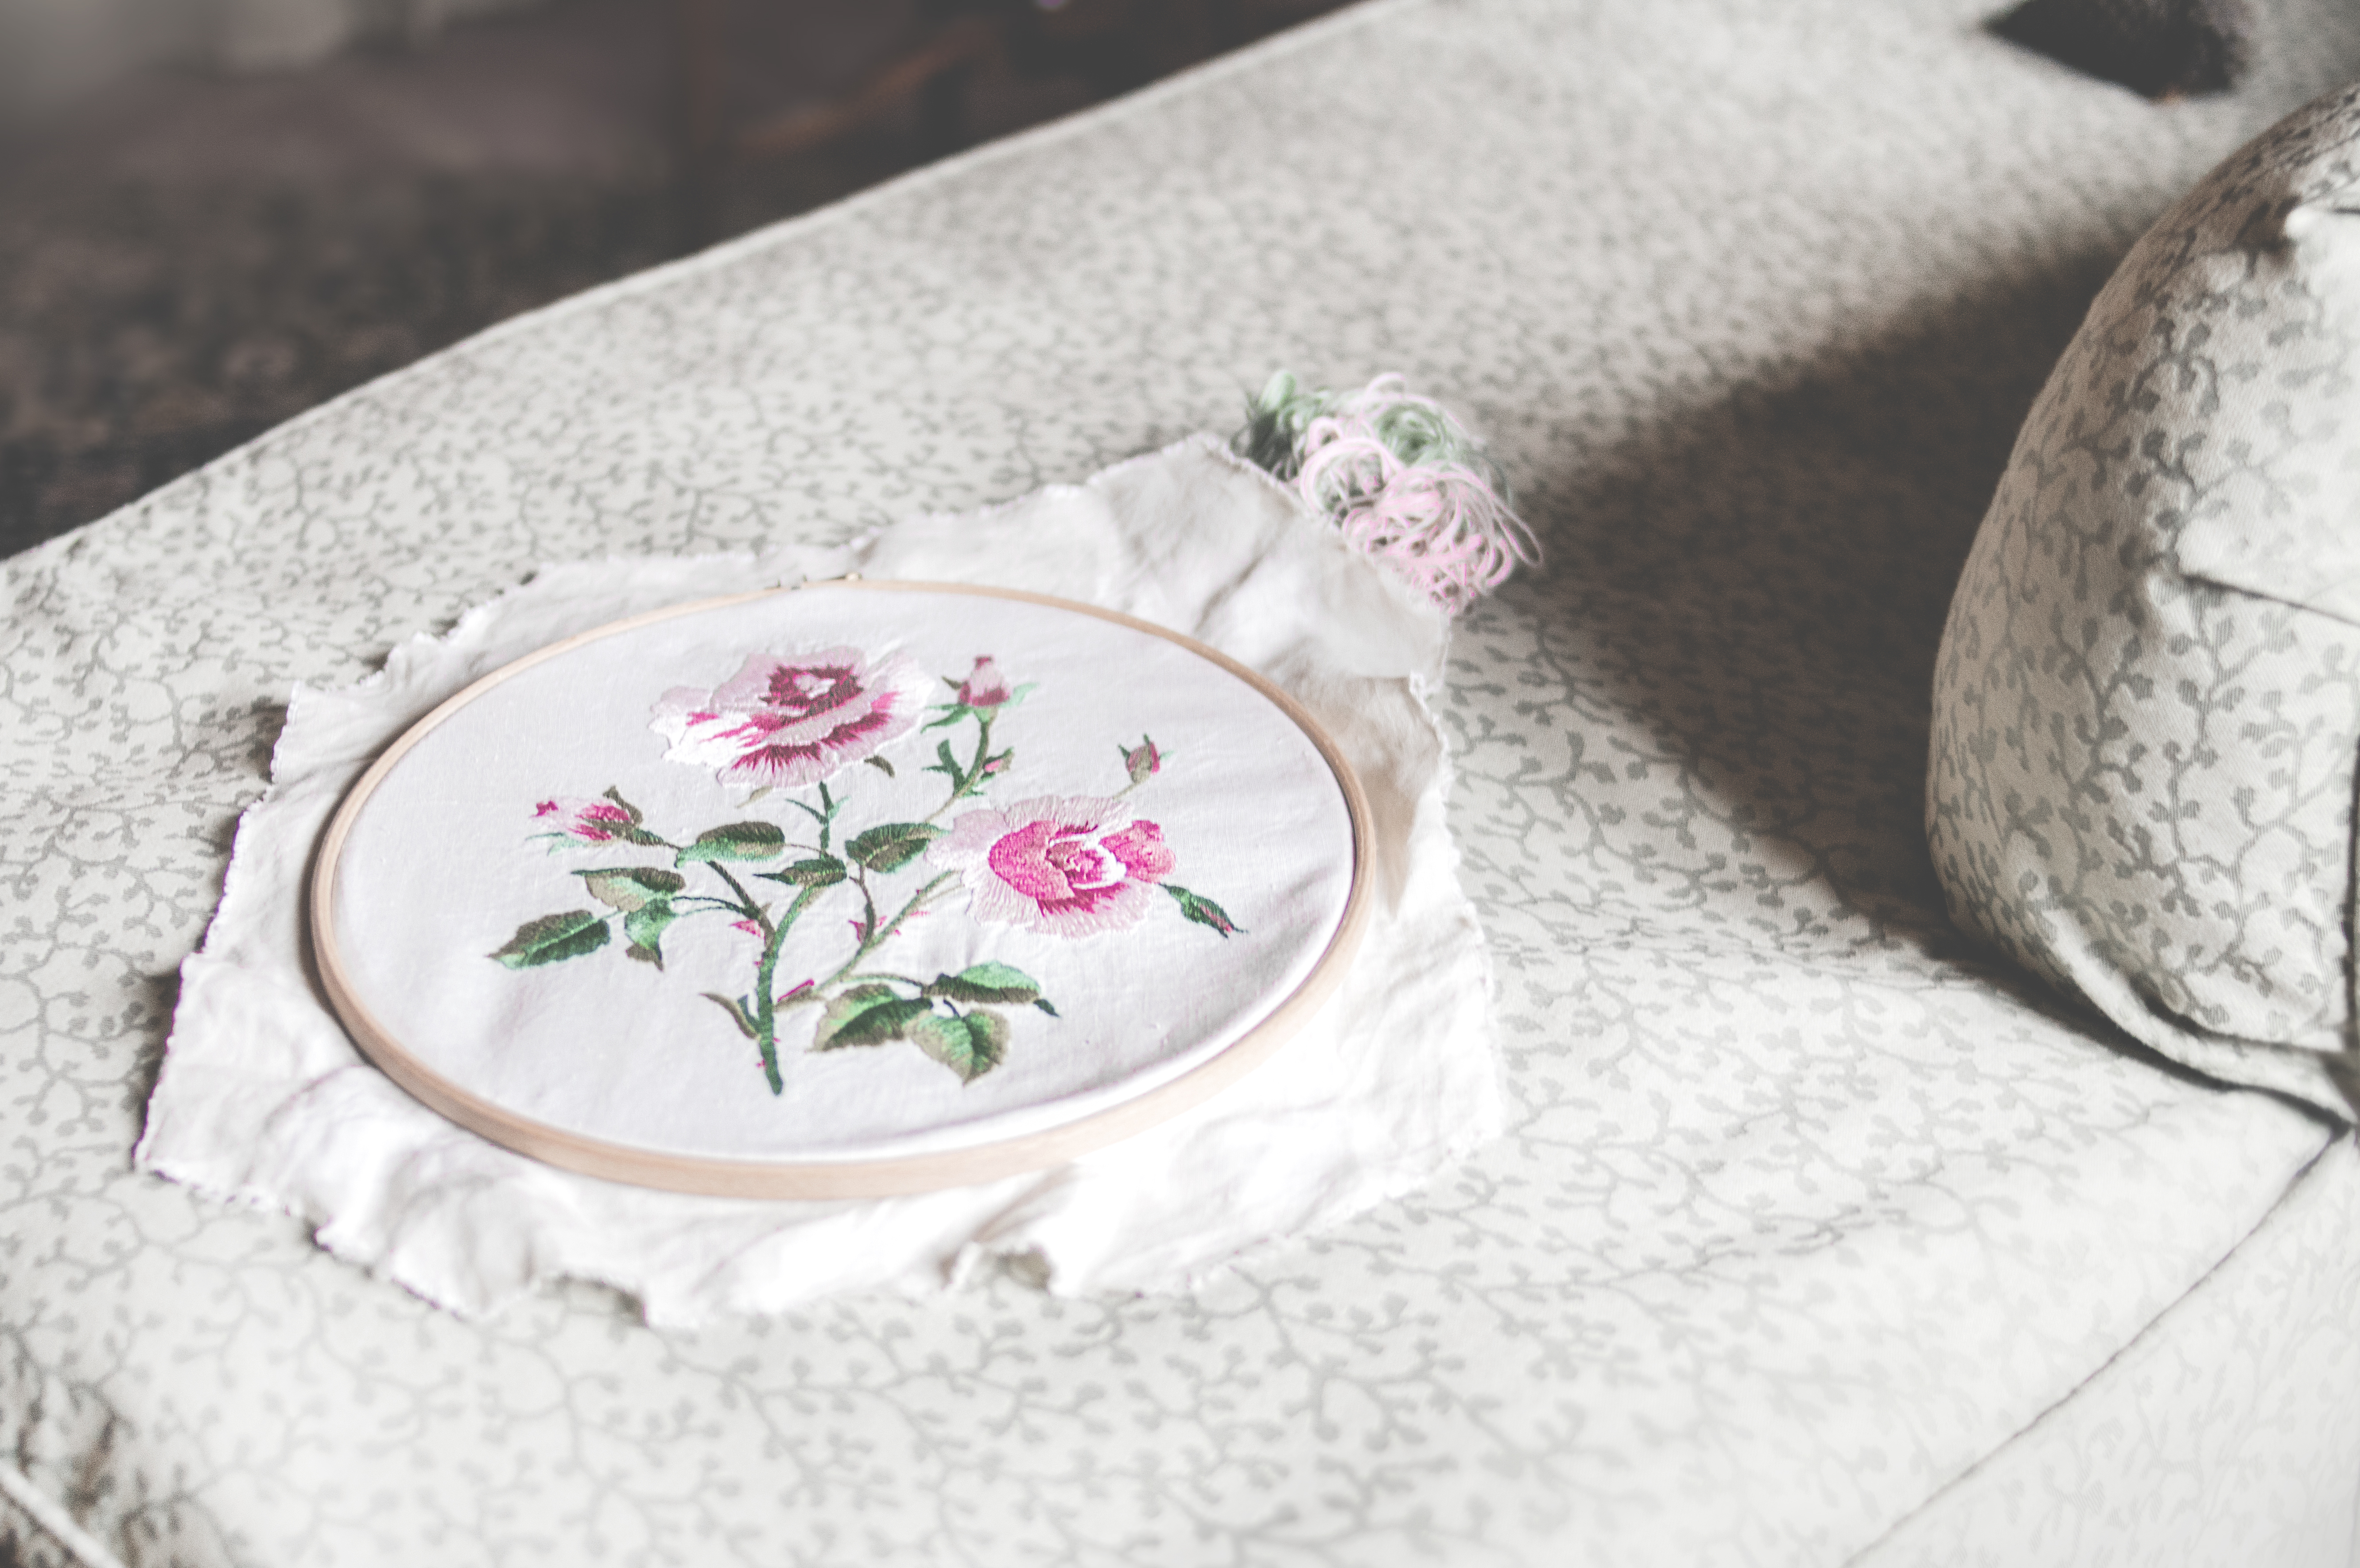 Roses embroidered on white fabric